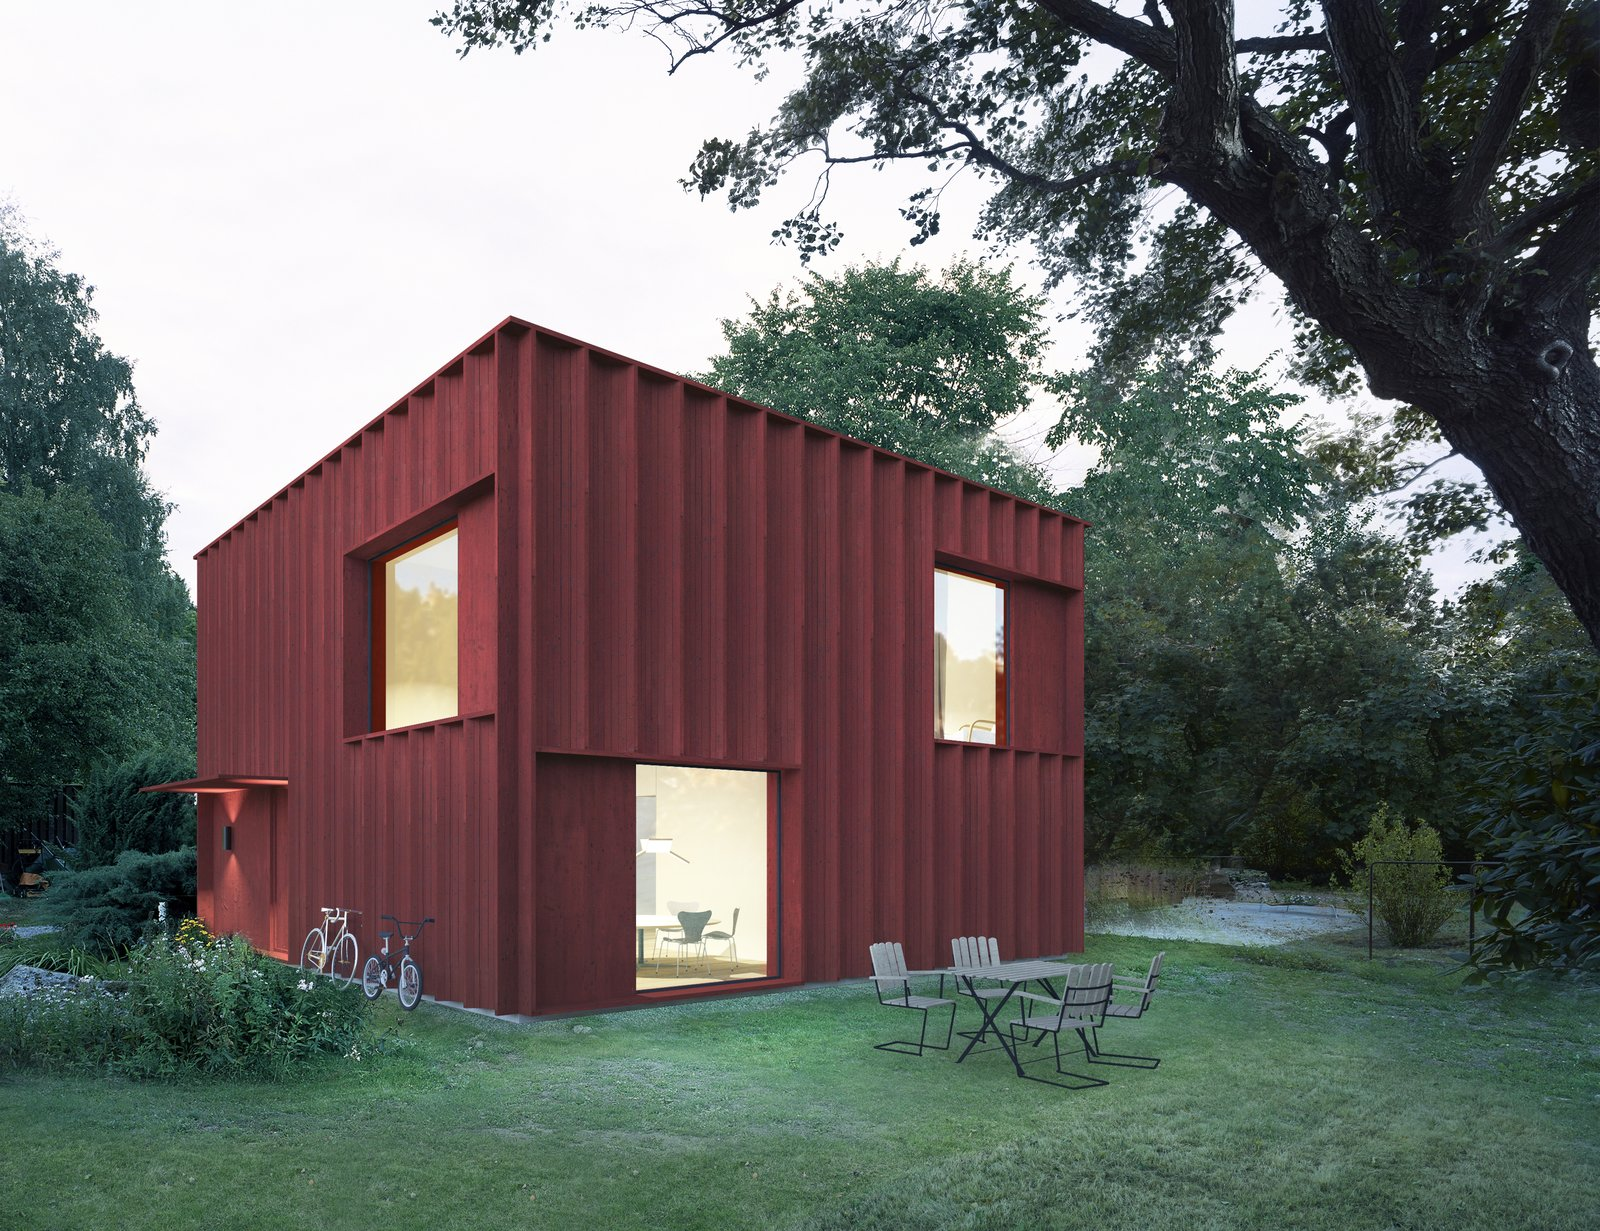 Hemnet  Swedish Prefab by Tham & Videgård Arkitekter  RED by Chris Deam